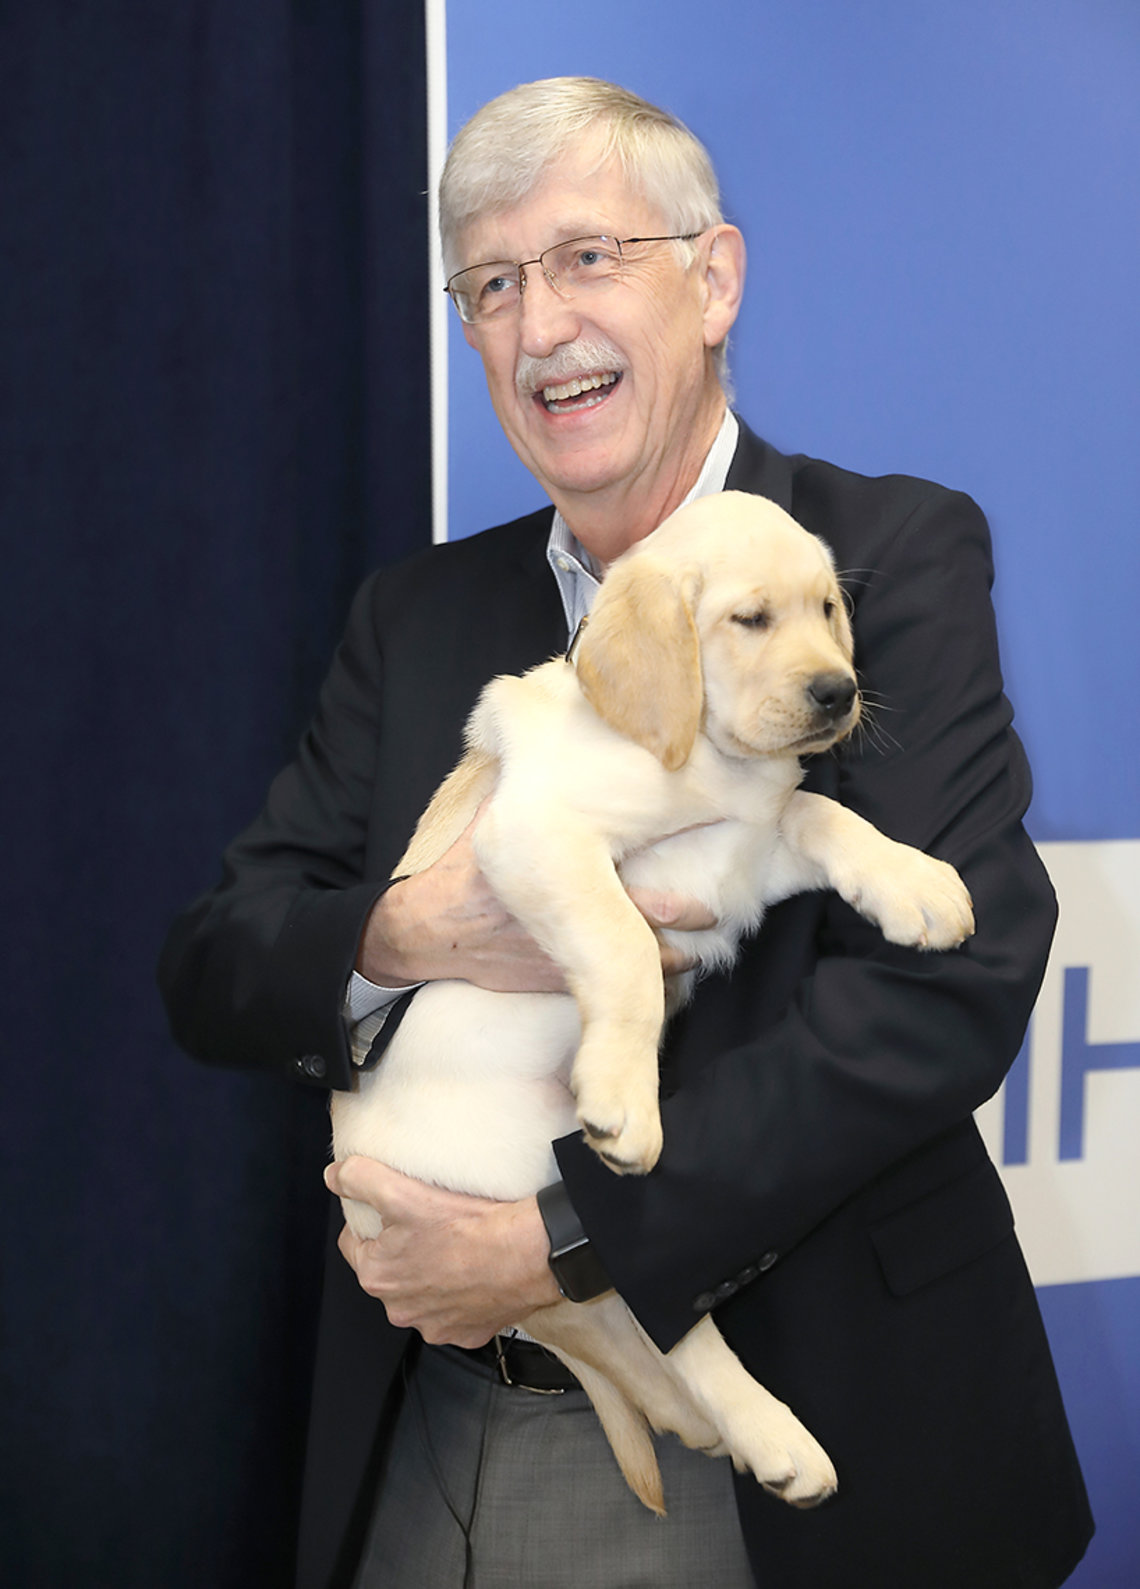 Smiling, Collins holds a puppy.